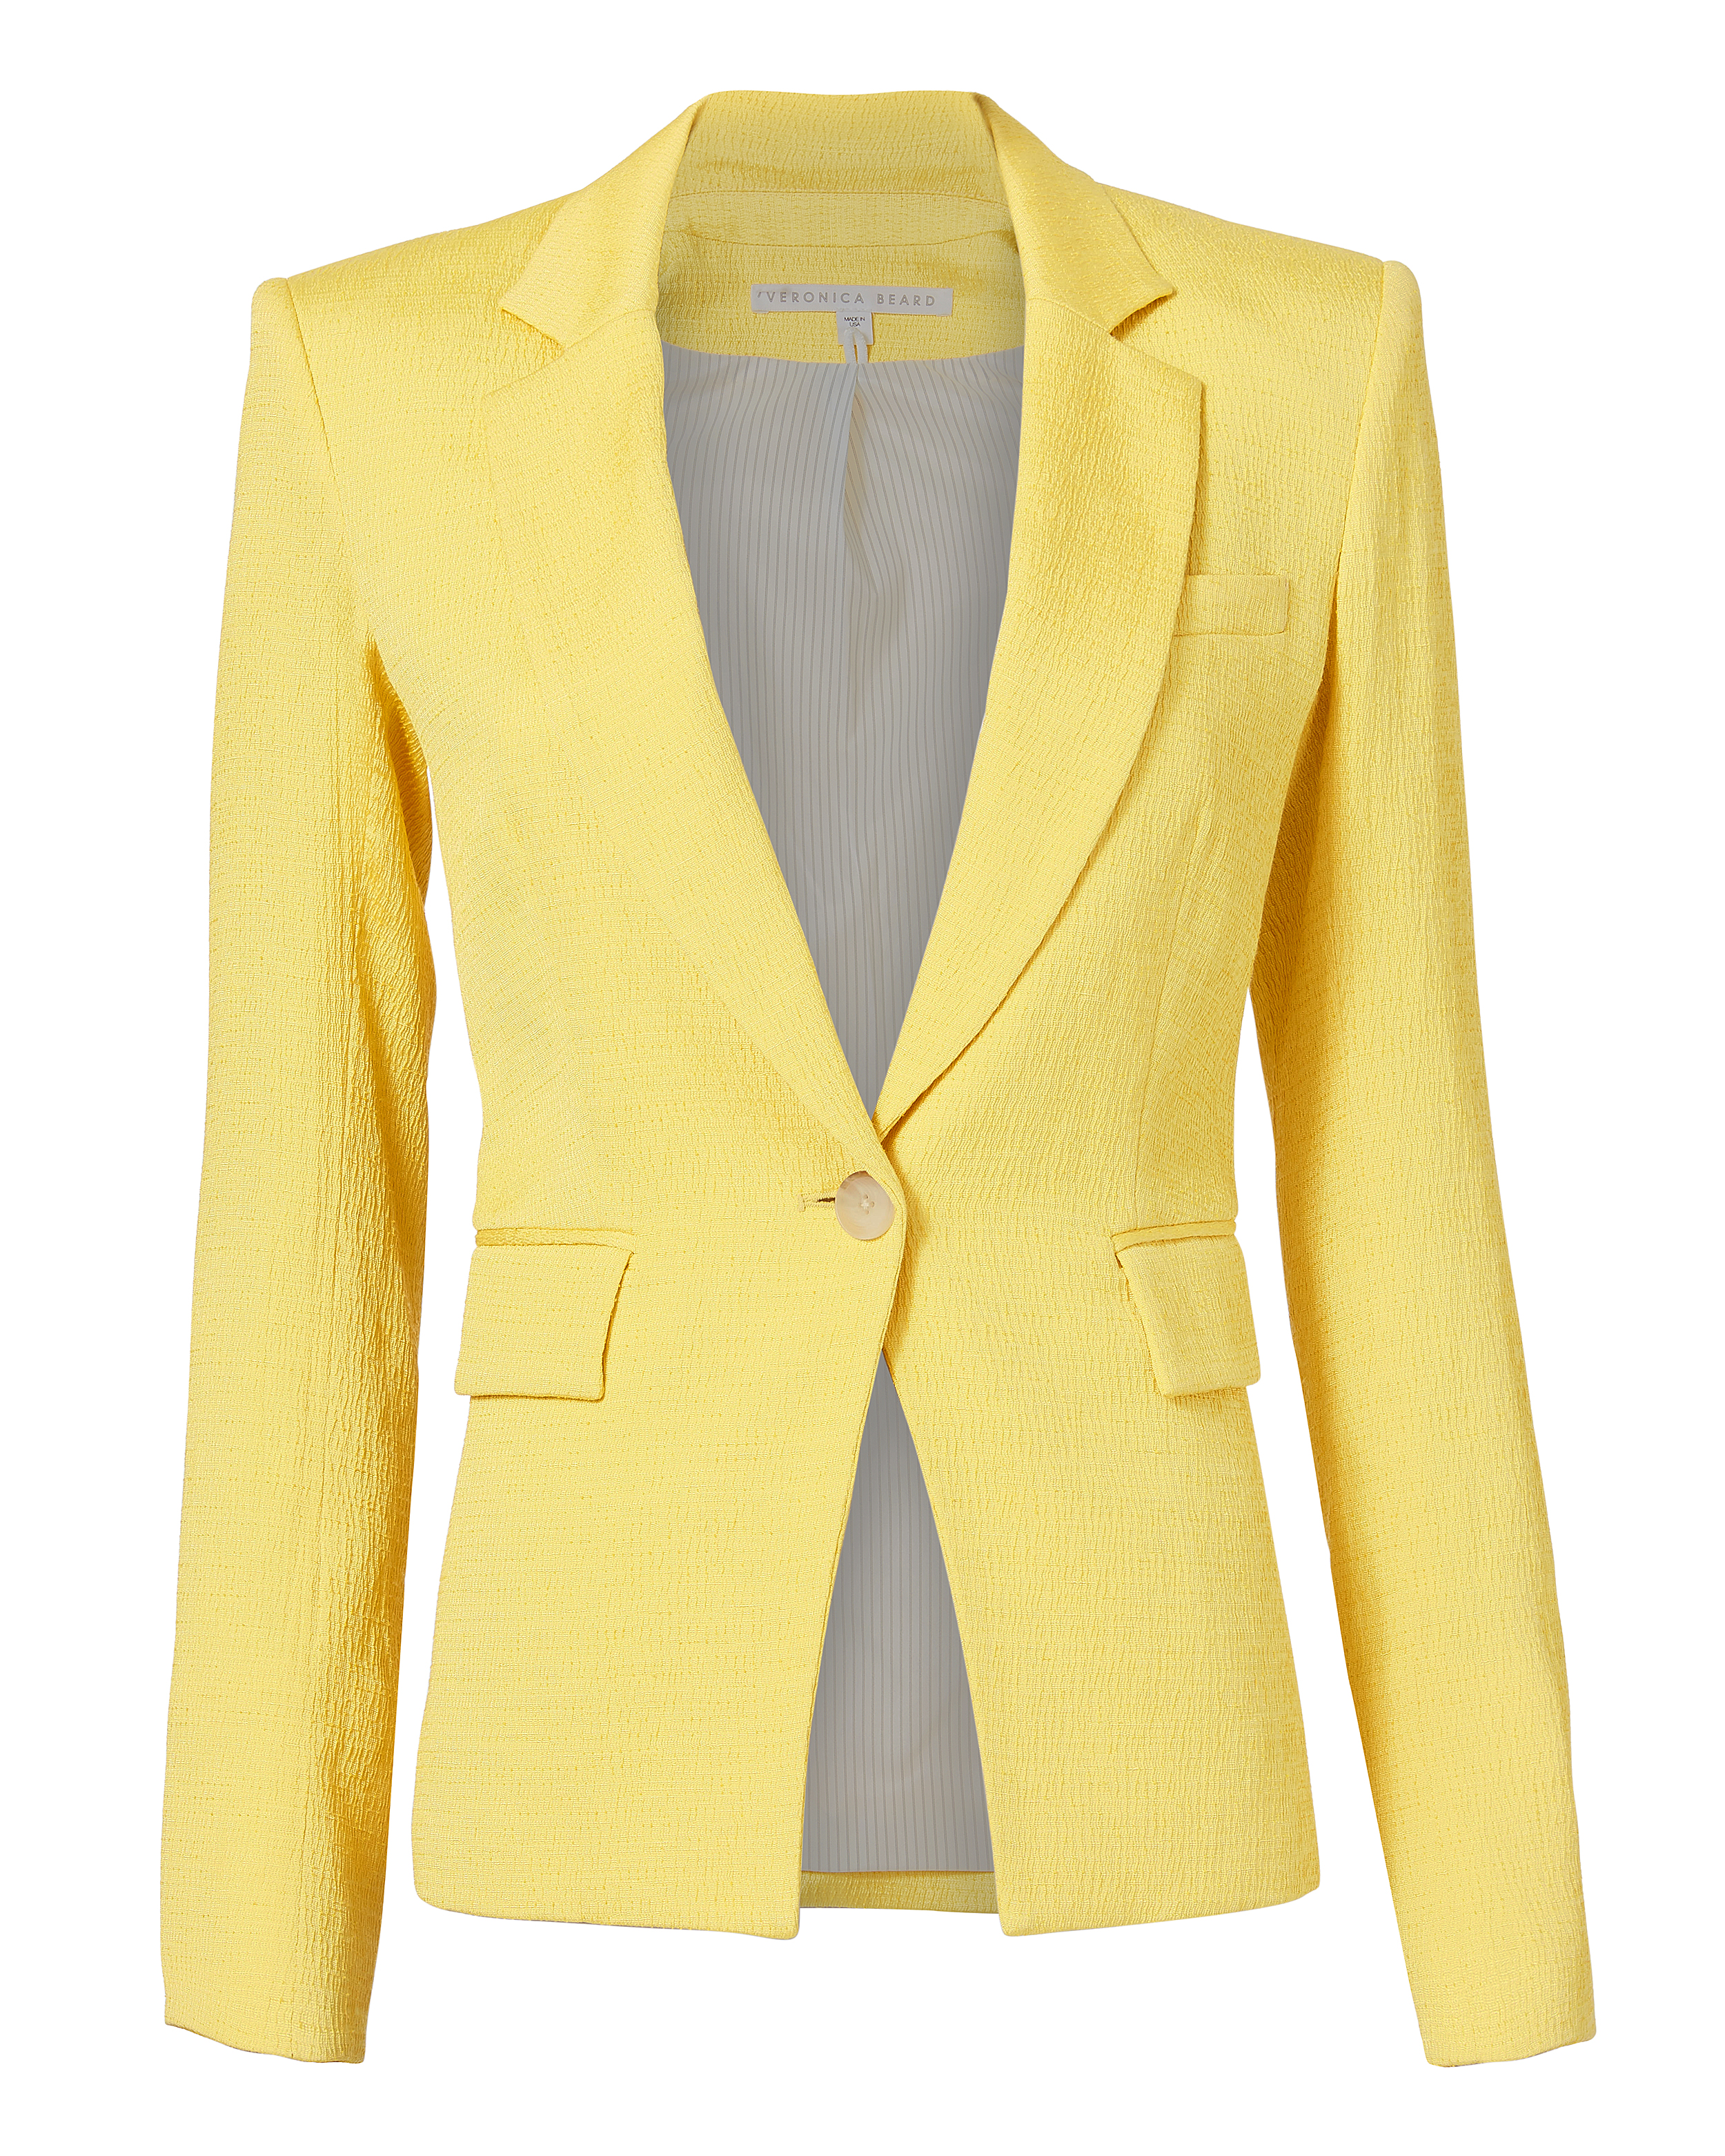 Bentley Lace Up Back Jacket by Veronica Beard